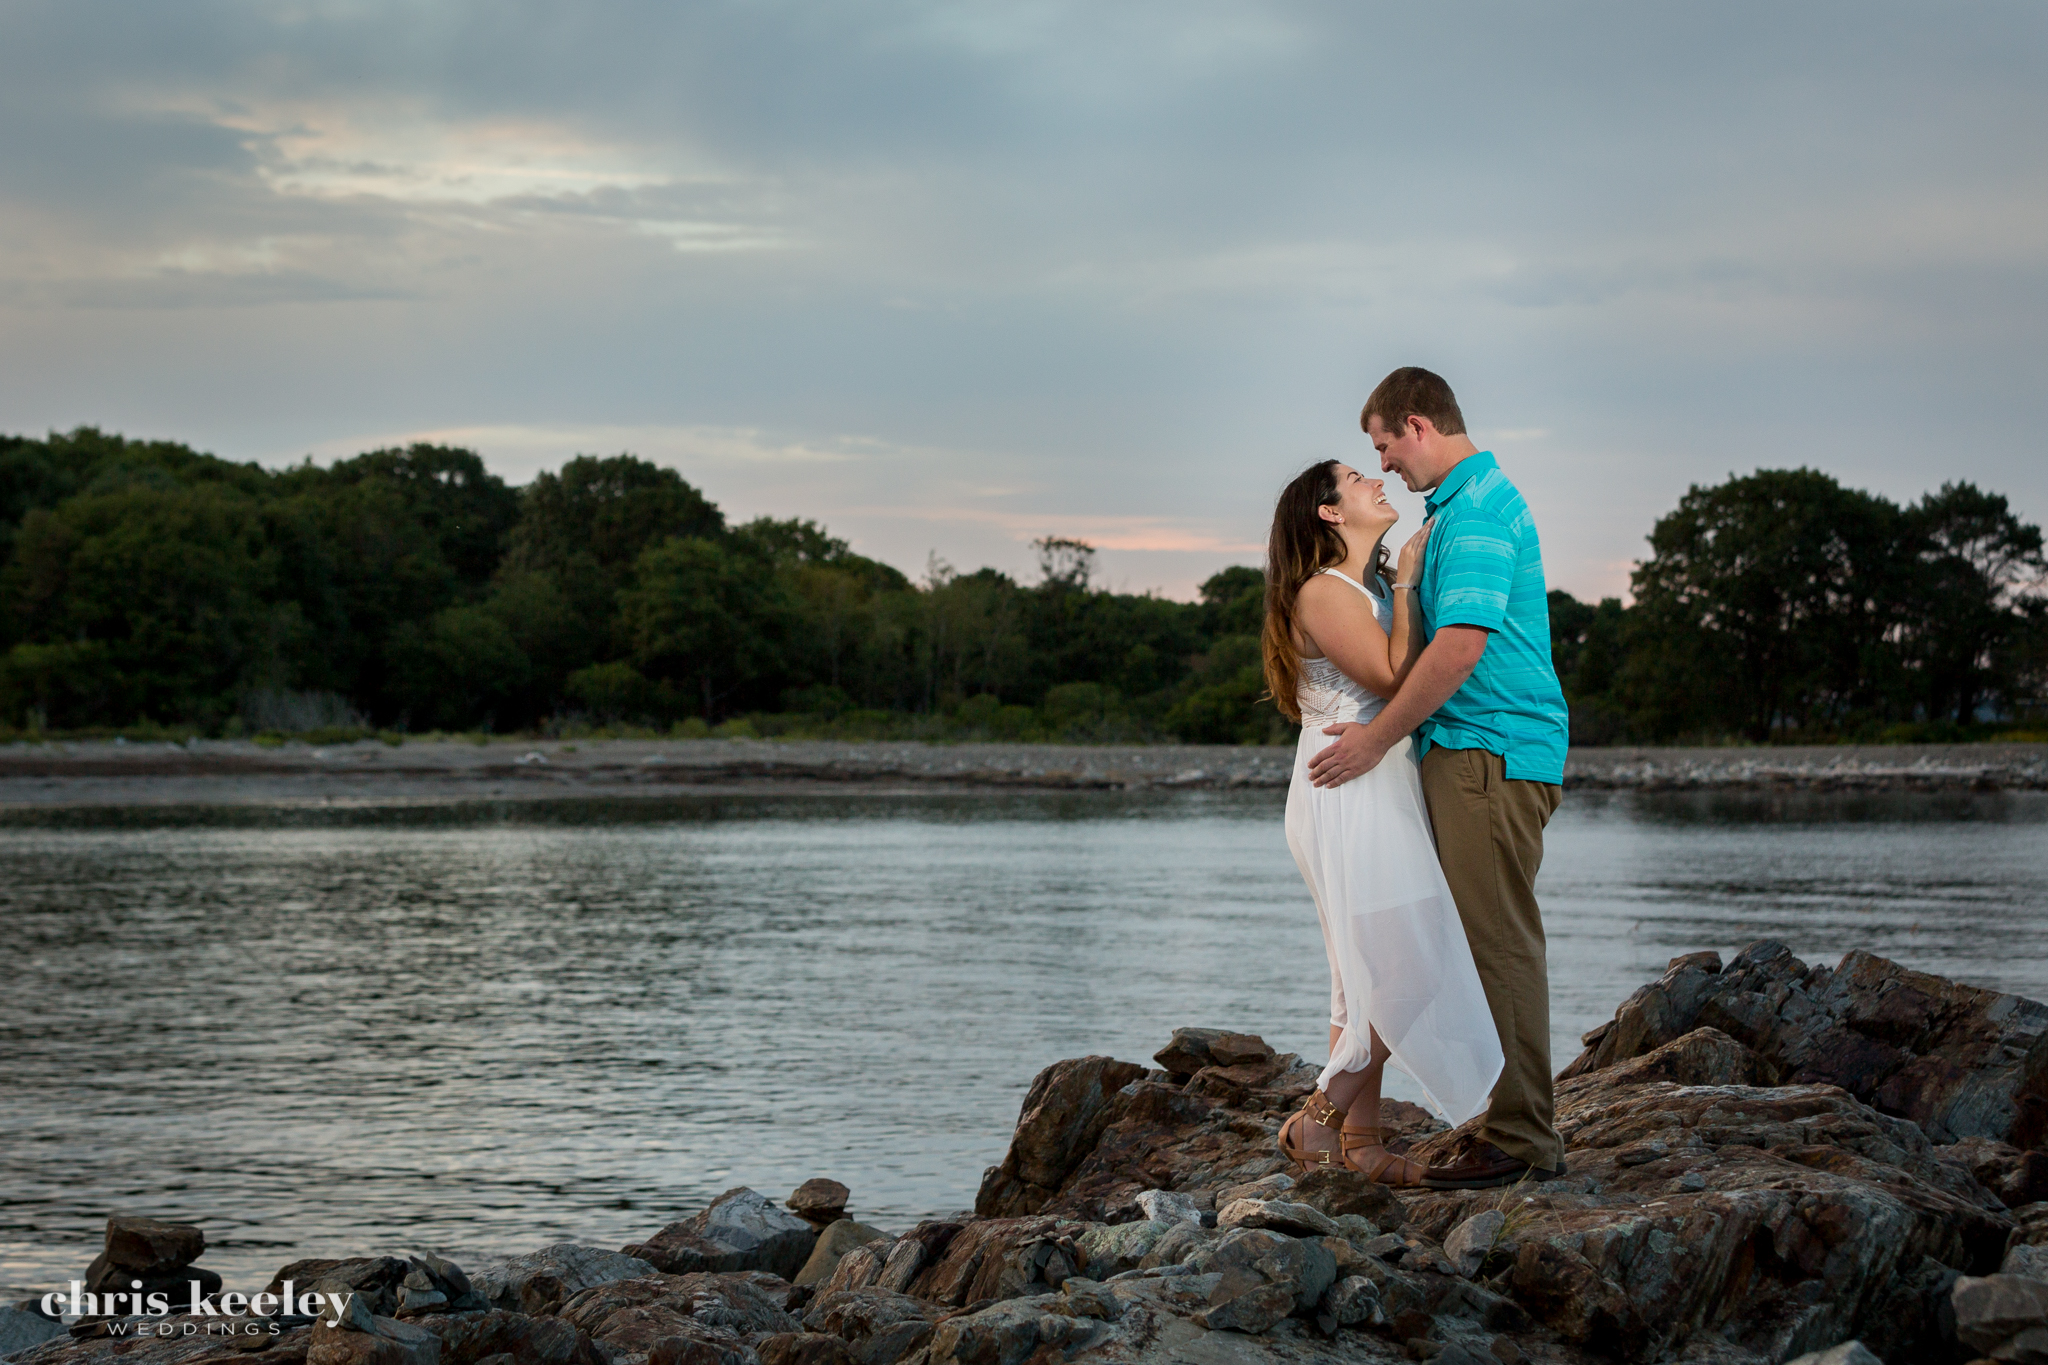 72-engagement-wedding-pictures-rye-new-hampshire-chris-keeley-weddings.jpg